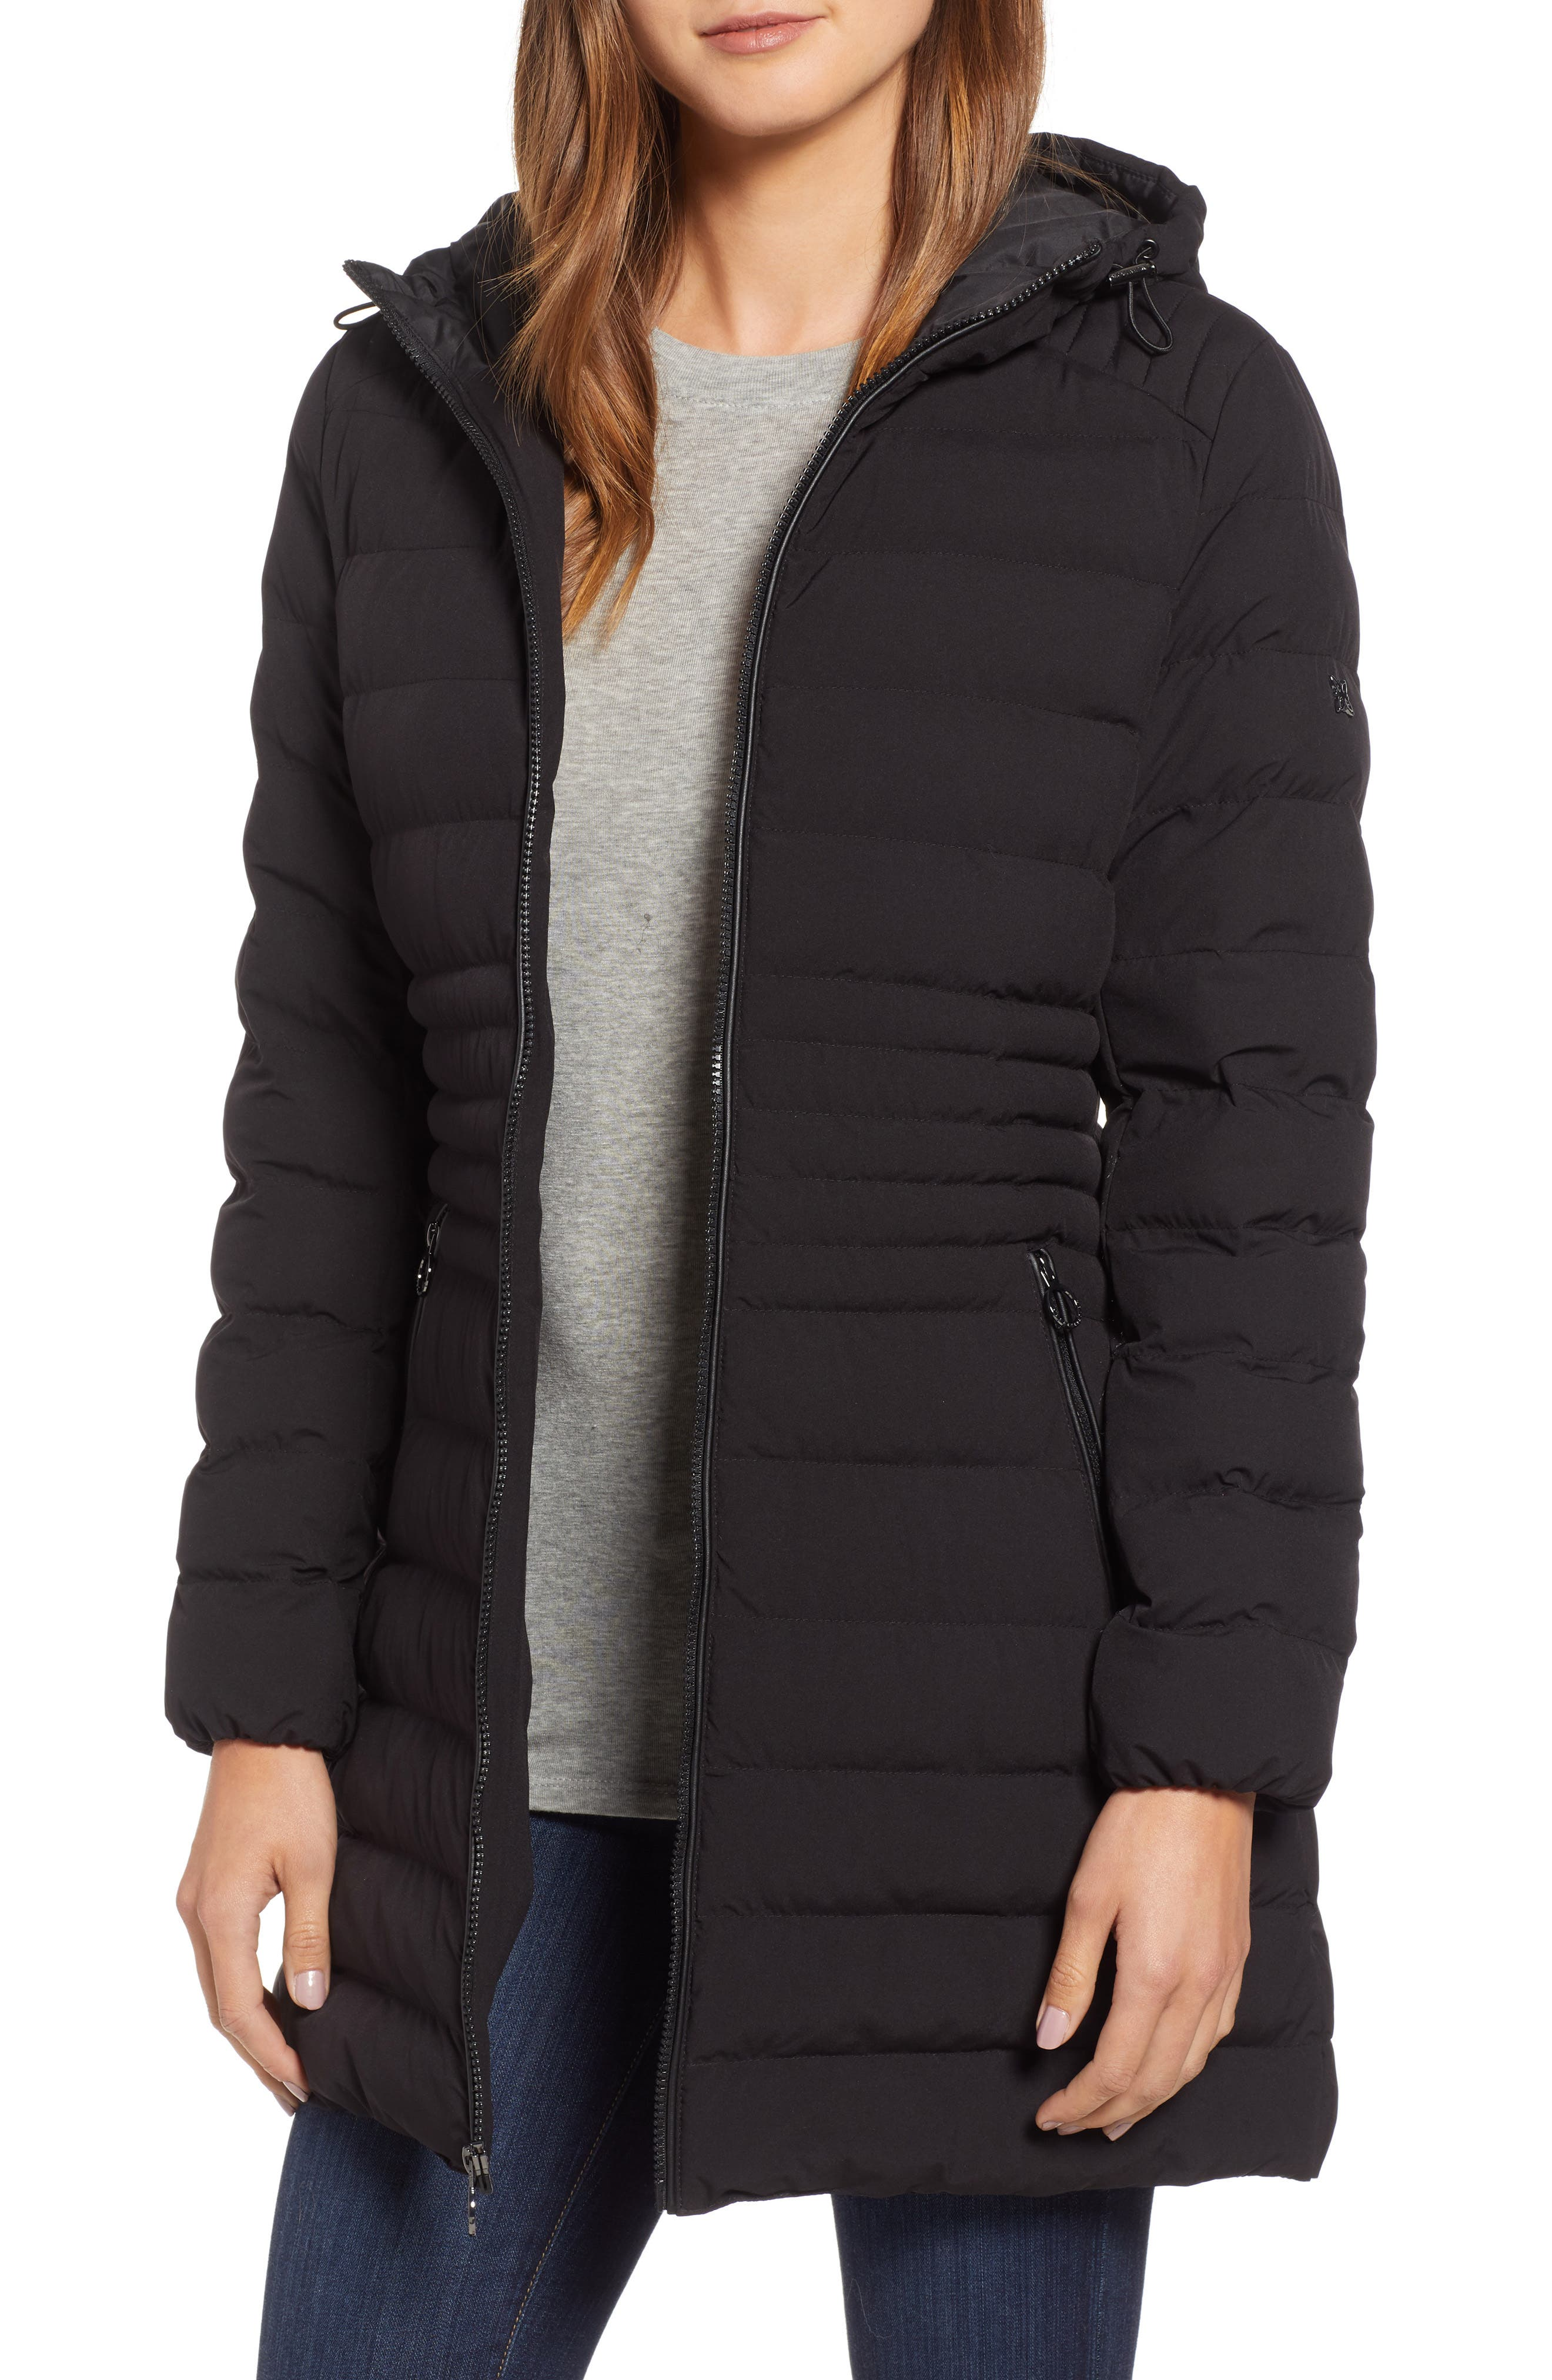 Bcbgeneration Hooded Down Puffer Coat, Black